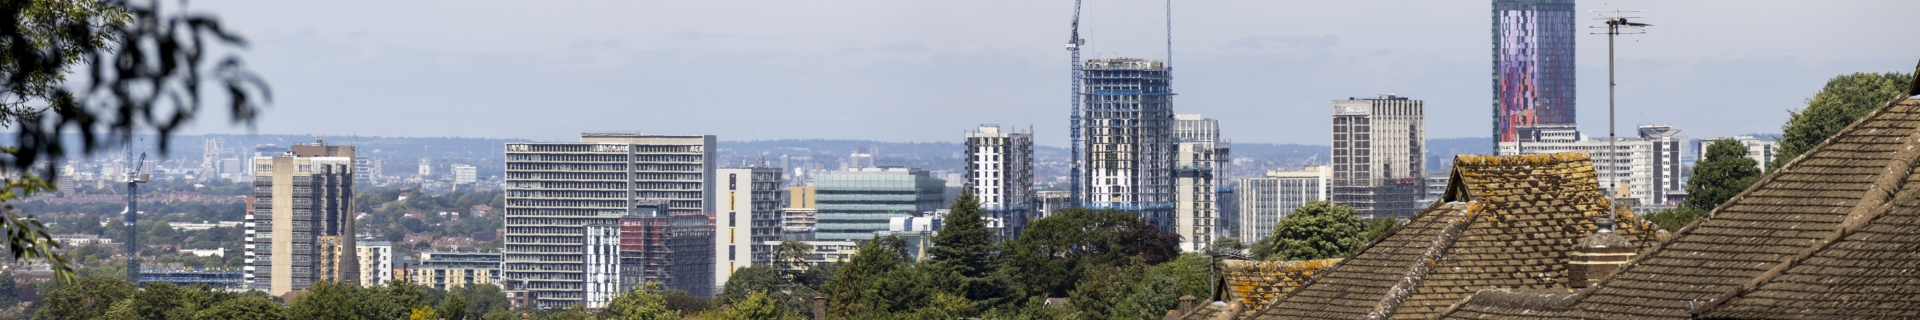 Banner image for Croydon